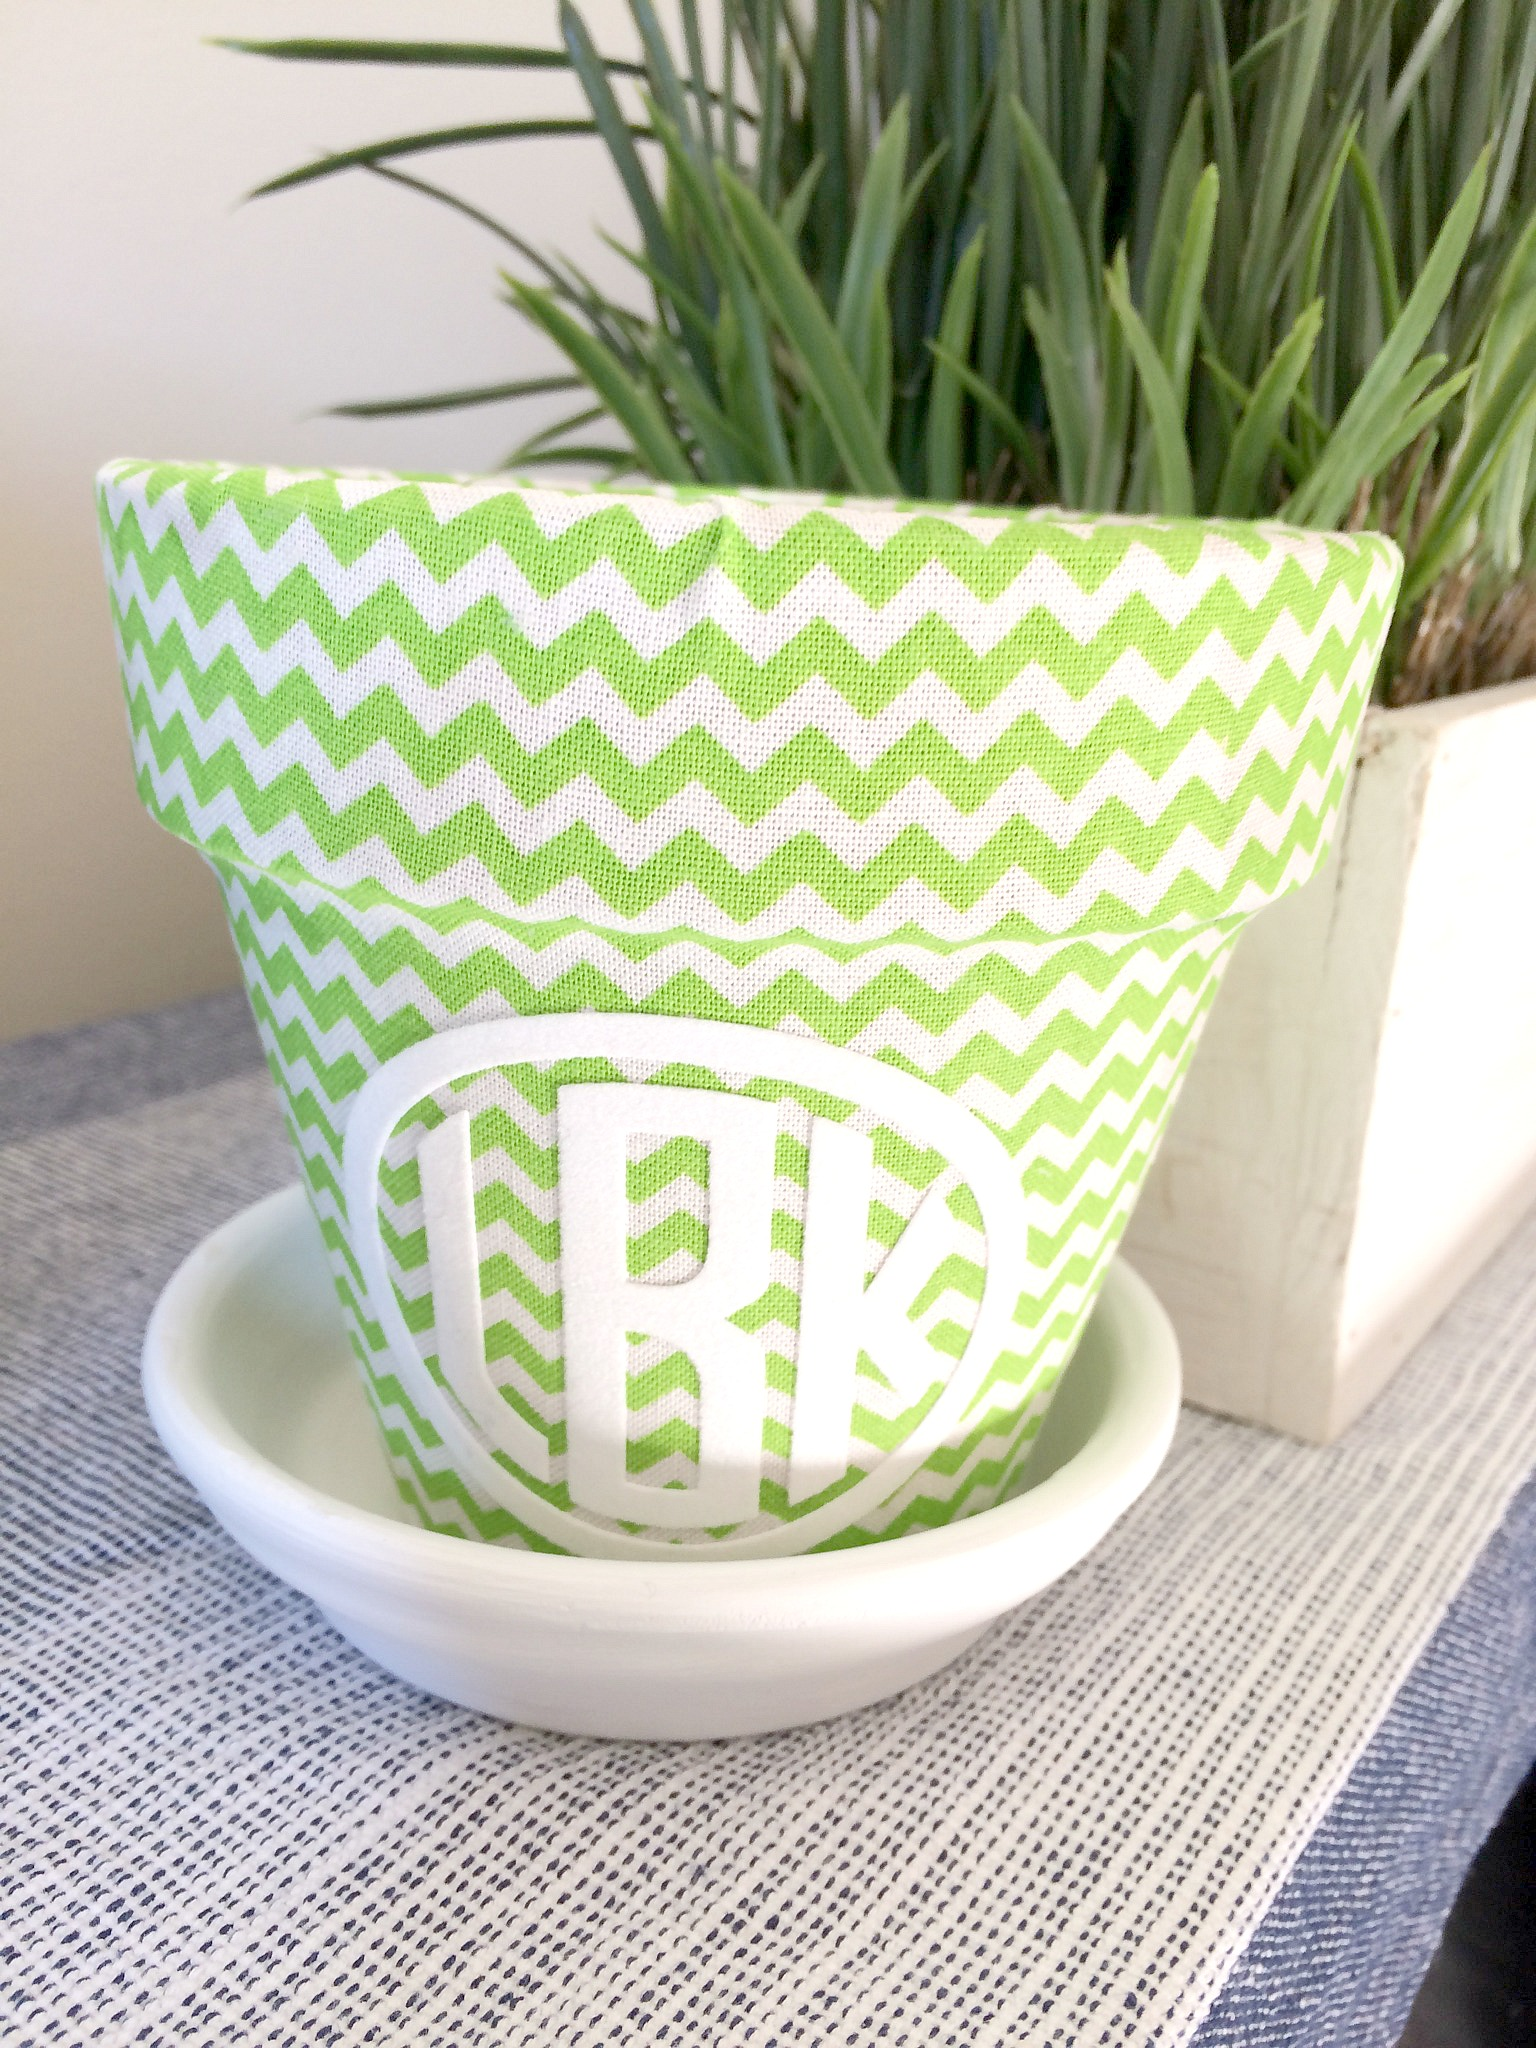 Fabric covered monogrammed pot